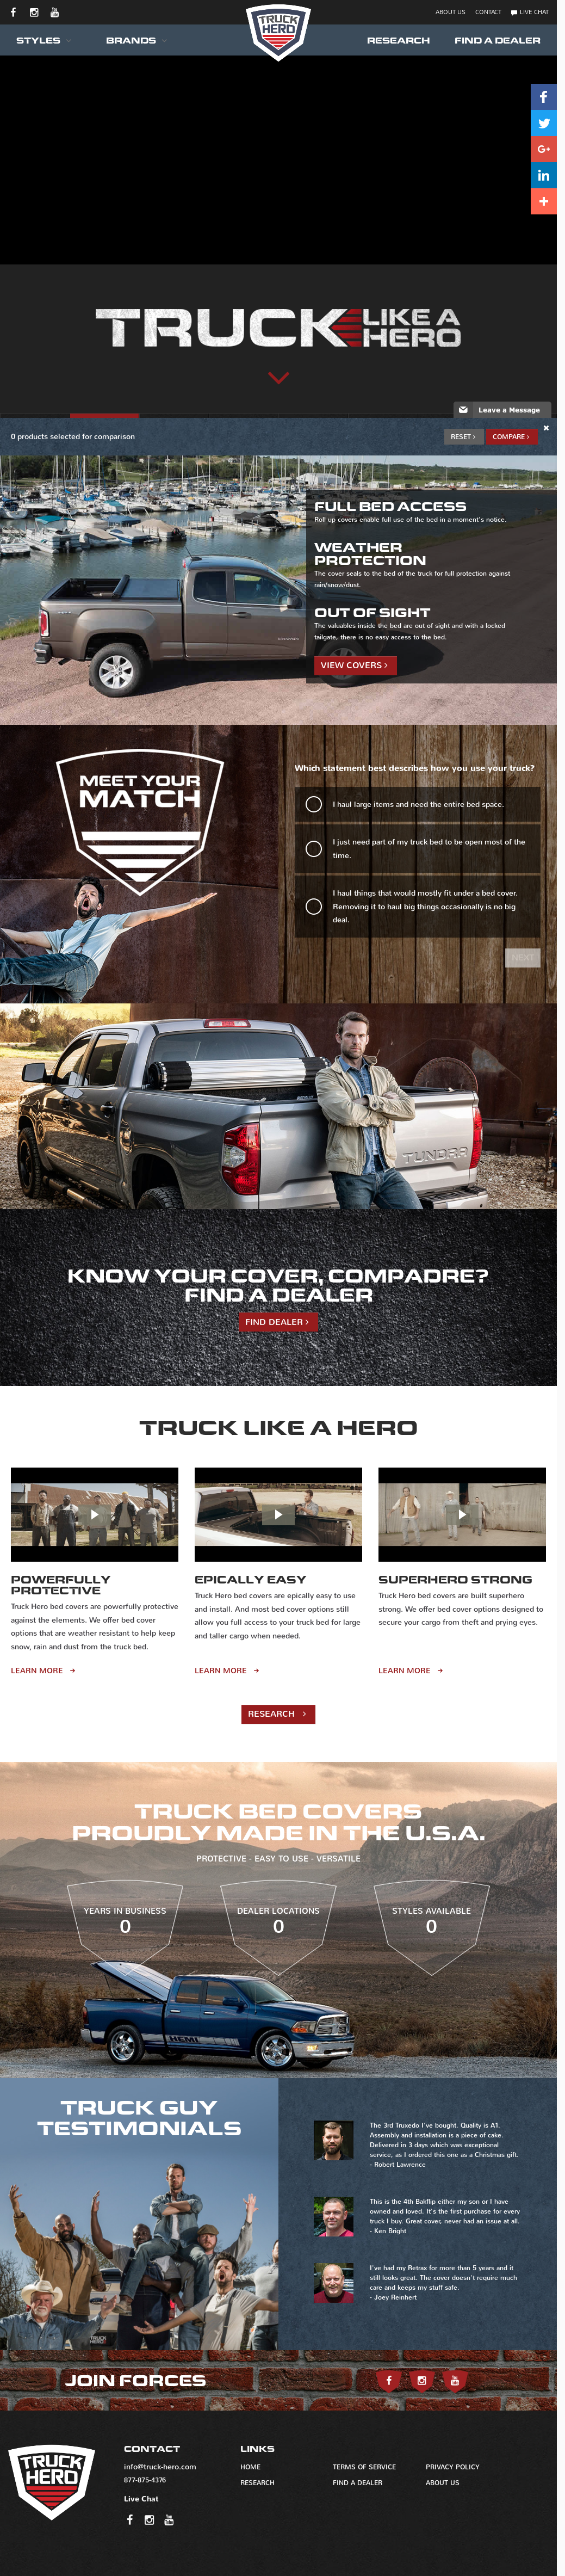 Truck Hero Competitors, Revenue and Employees - Owler